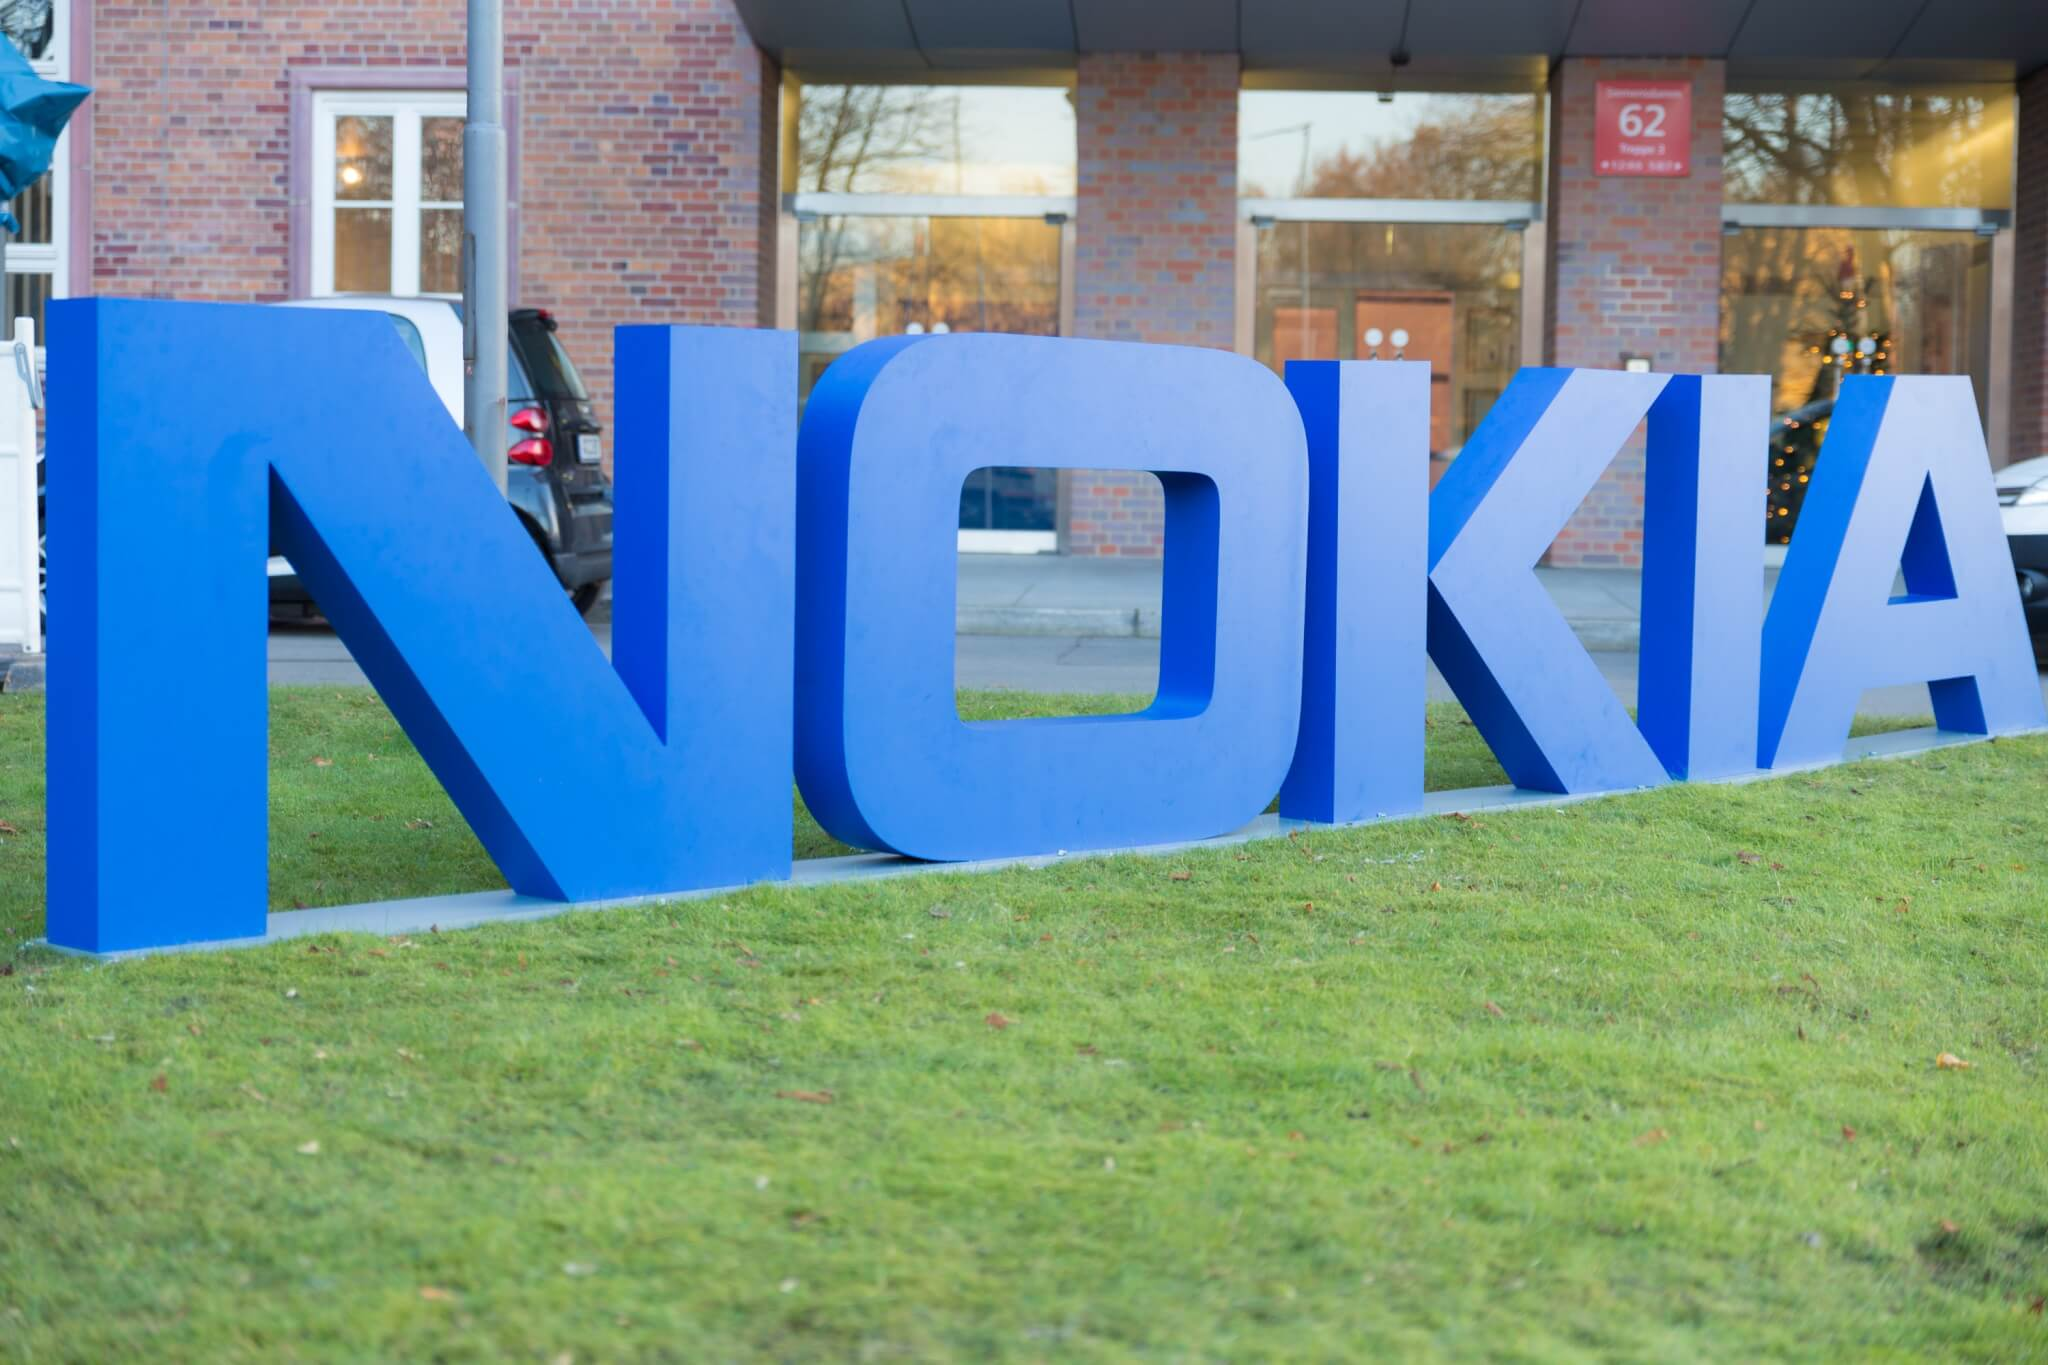 Nokia acquires SpaceTime Insight to bring machine learning to its IoT roadmap